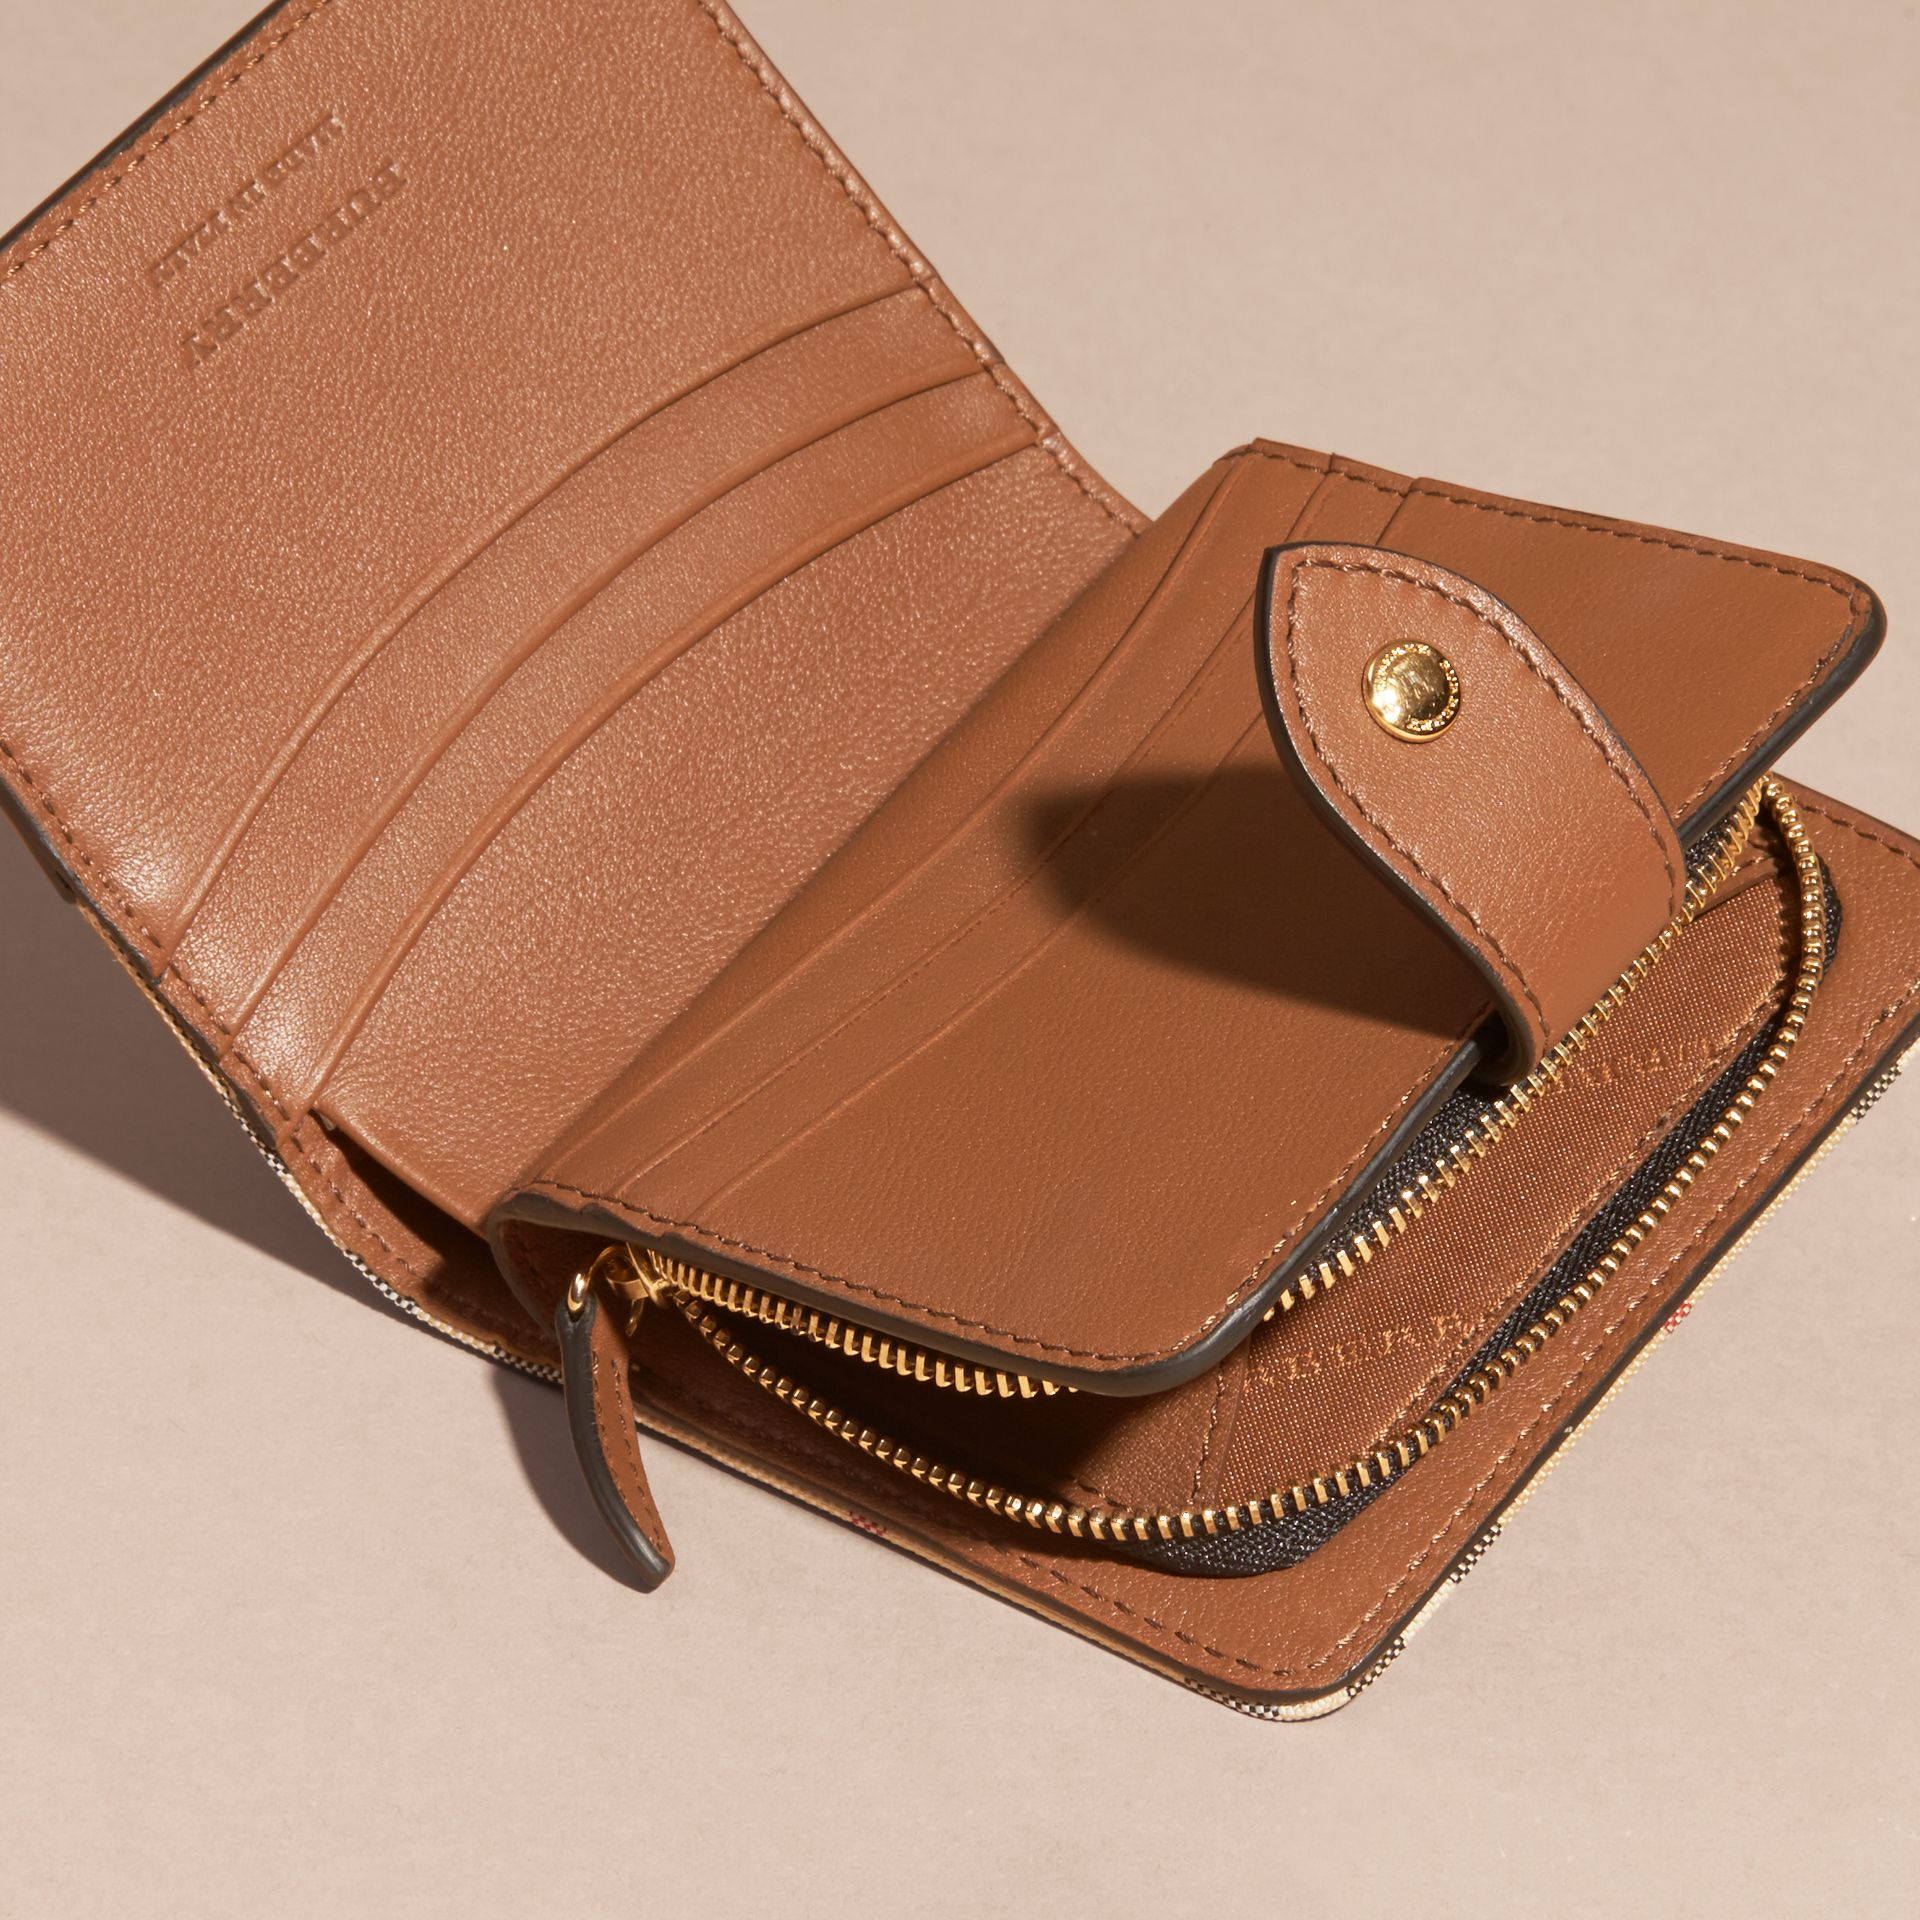 Tan Horseferry Check and Leather Wallet Tan - gallery image 5